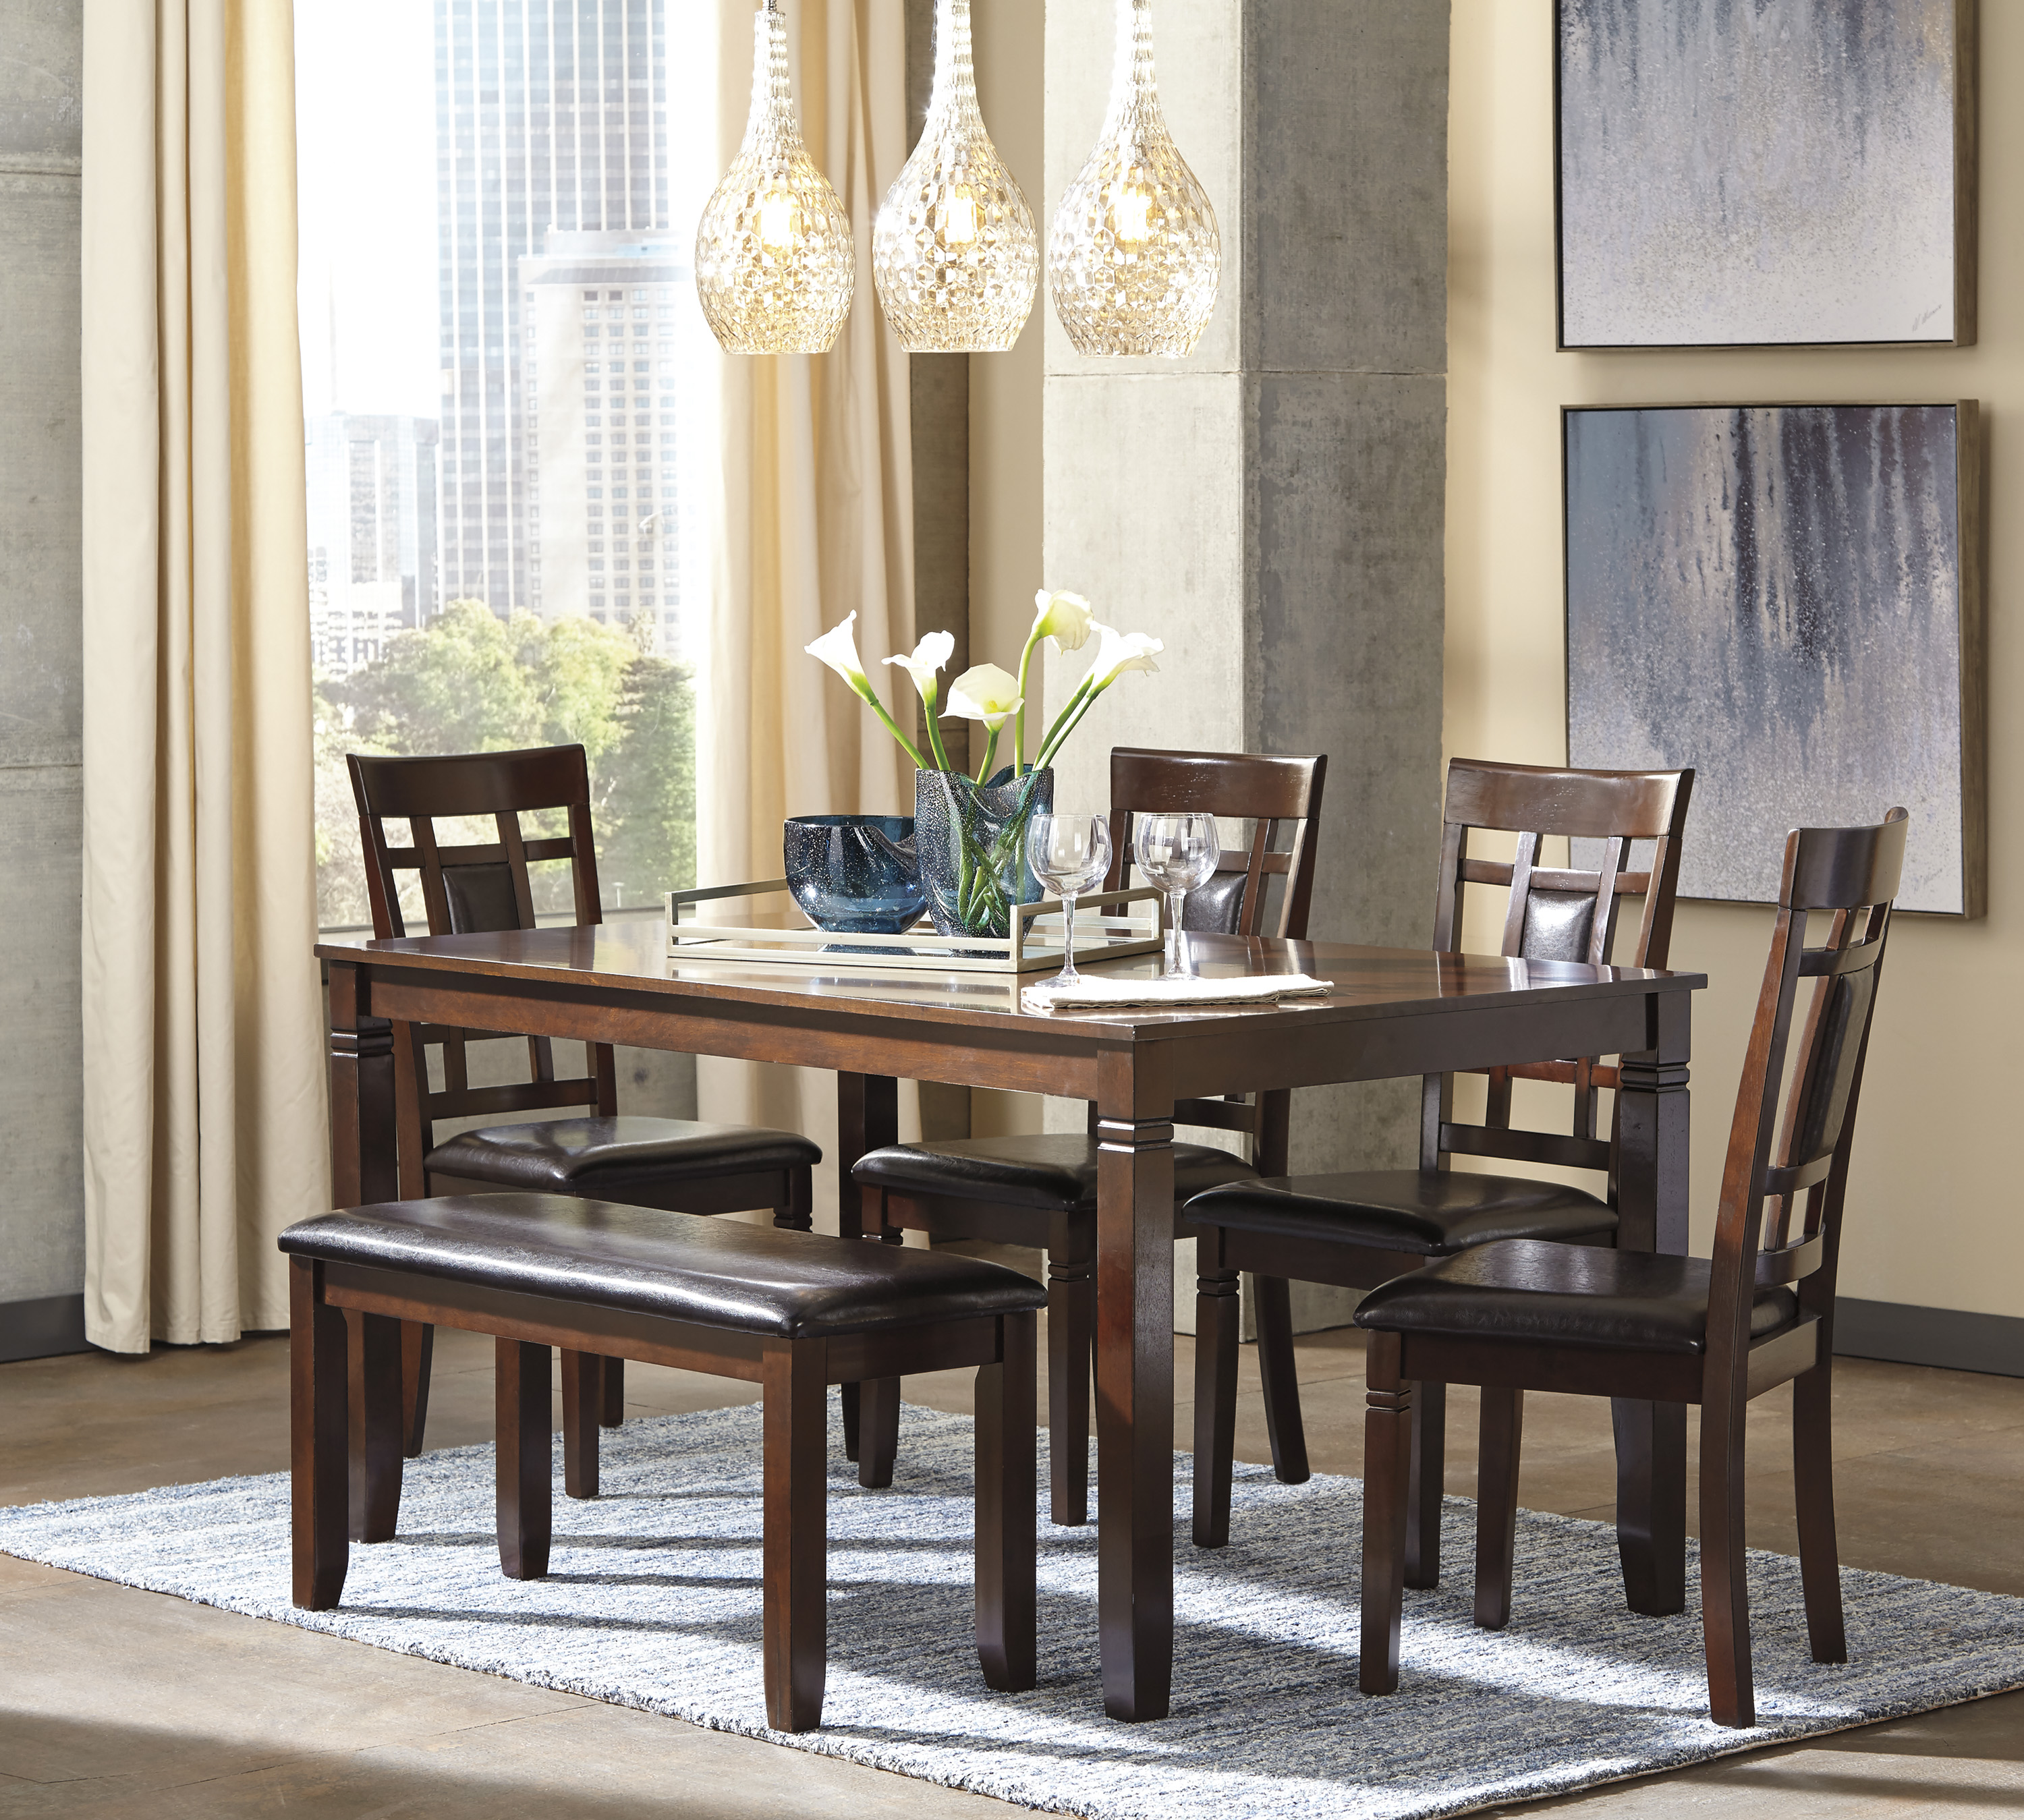 Sienna 6-Pc. Dining Set